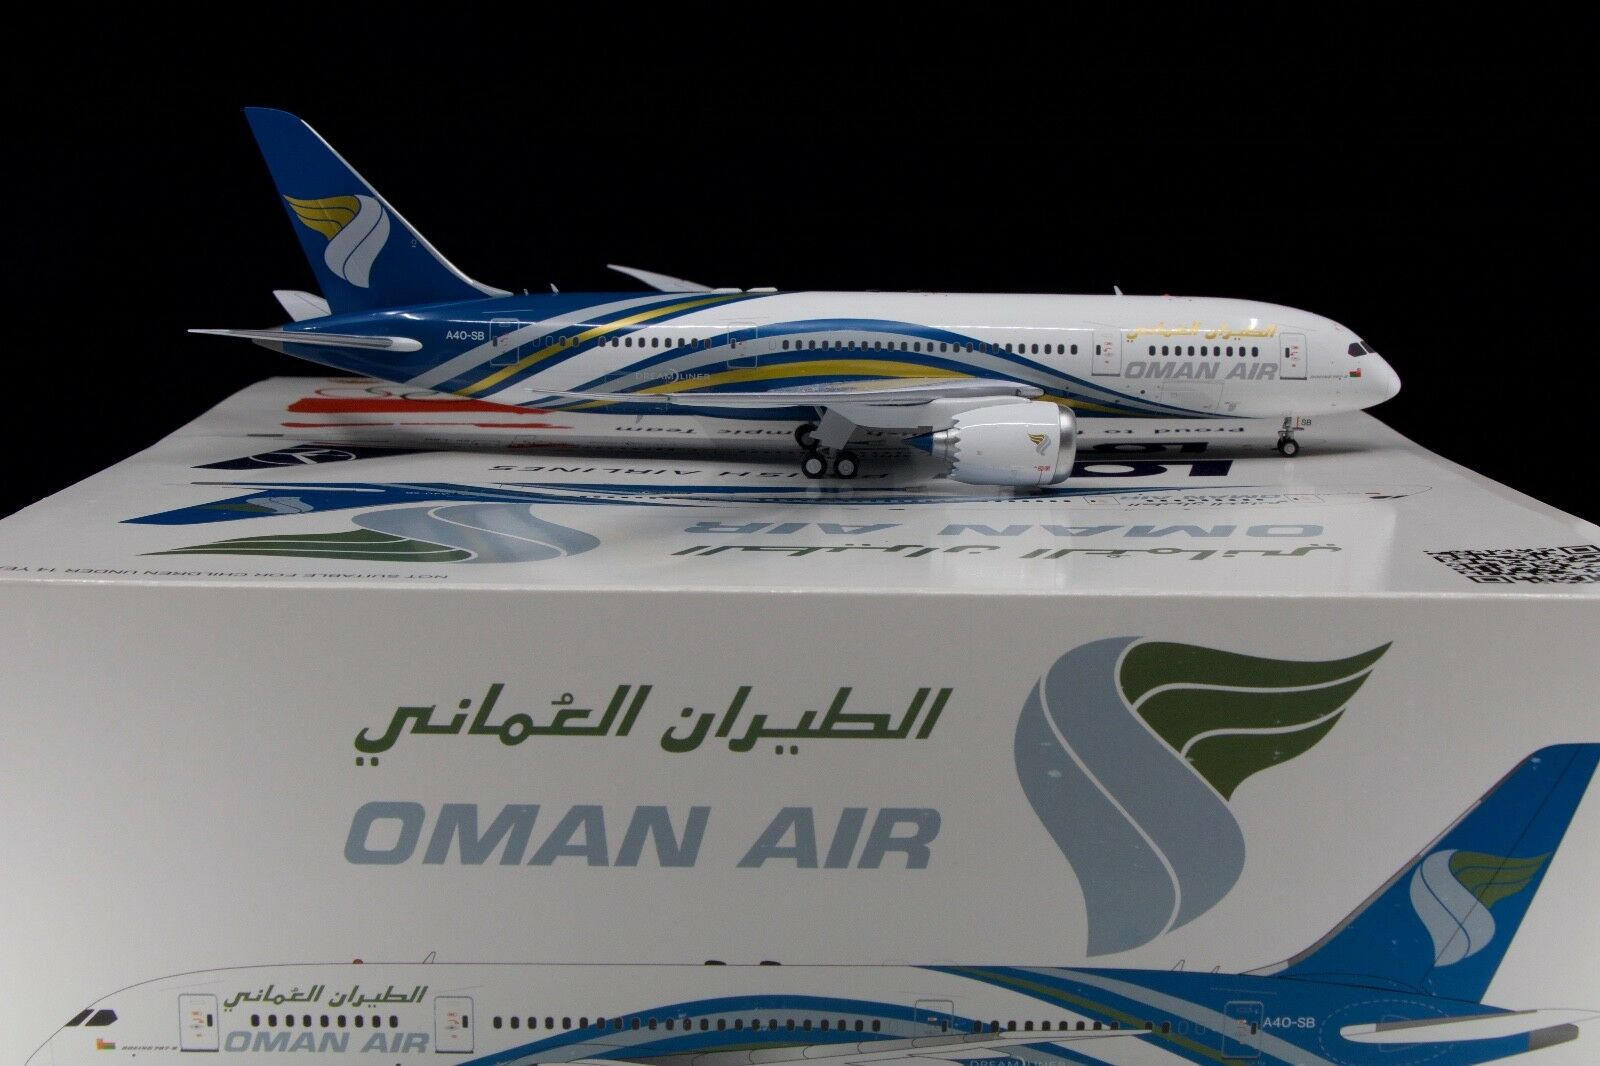 Inflight200 1/200 Oman Air 787-800 A40-SO